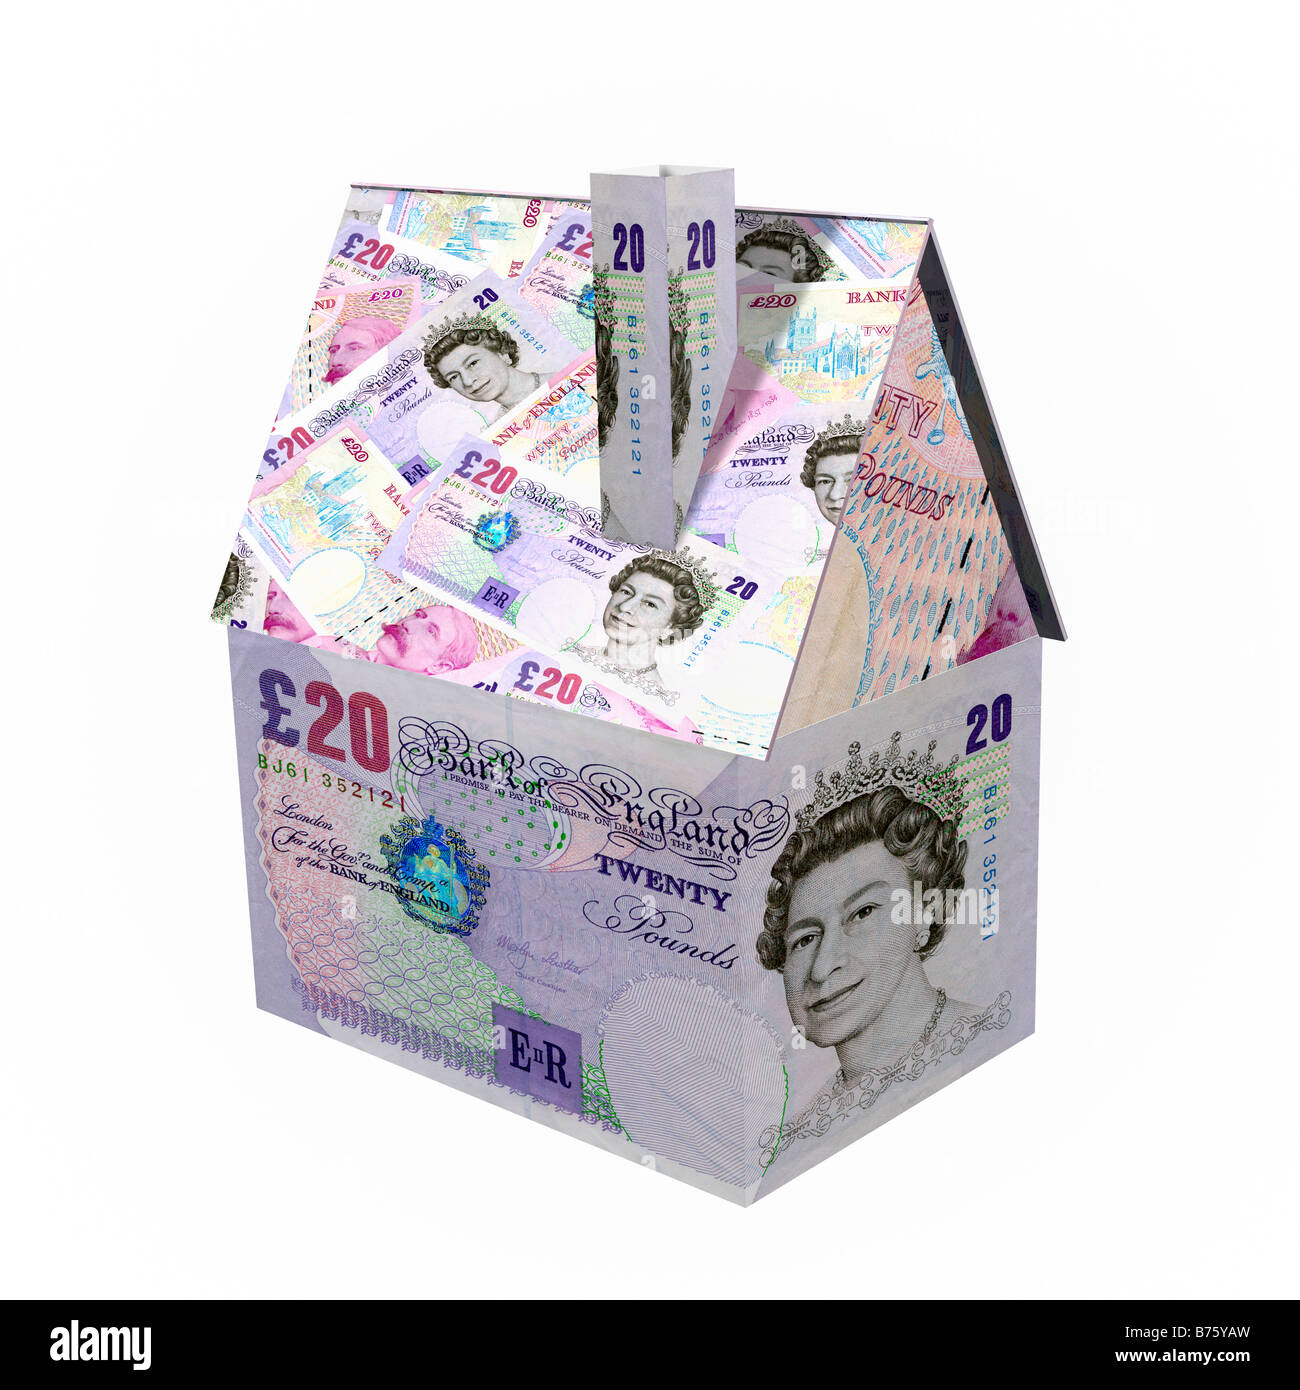 House made from 20 pound notes sterling - 3d cgi render financial concept - Stock Image